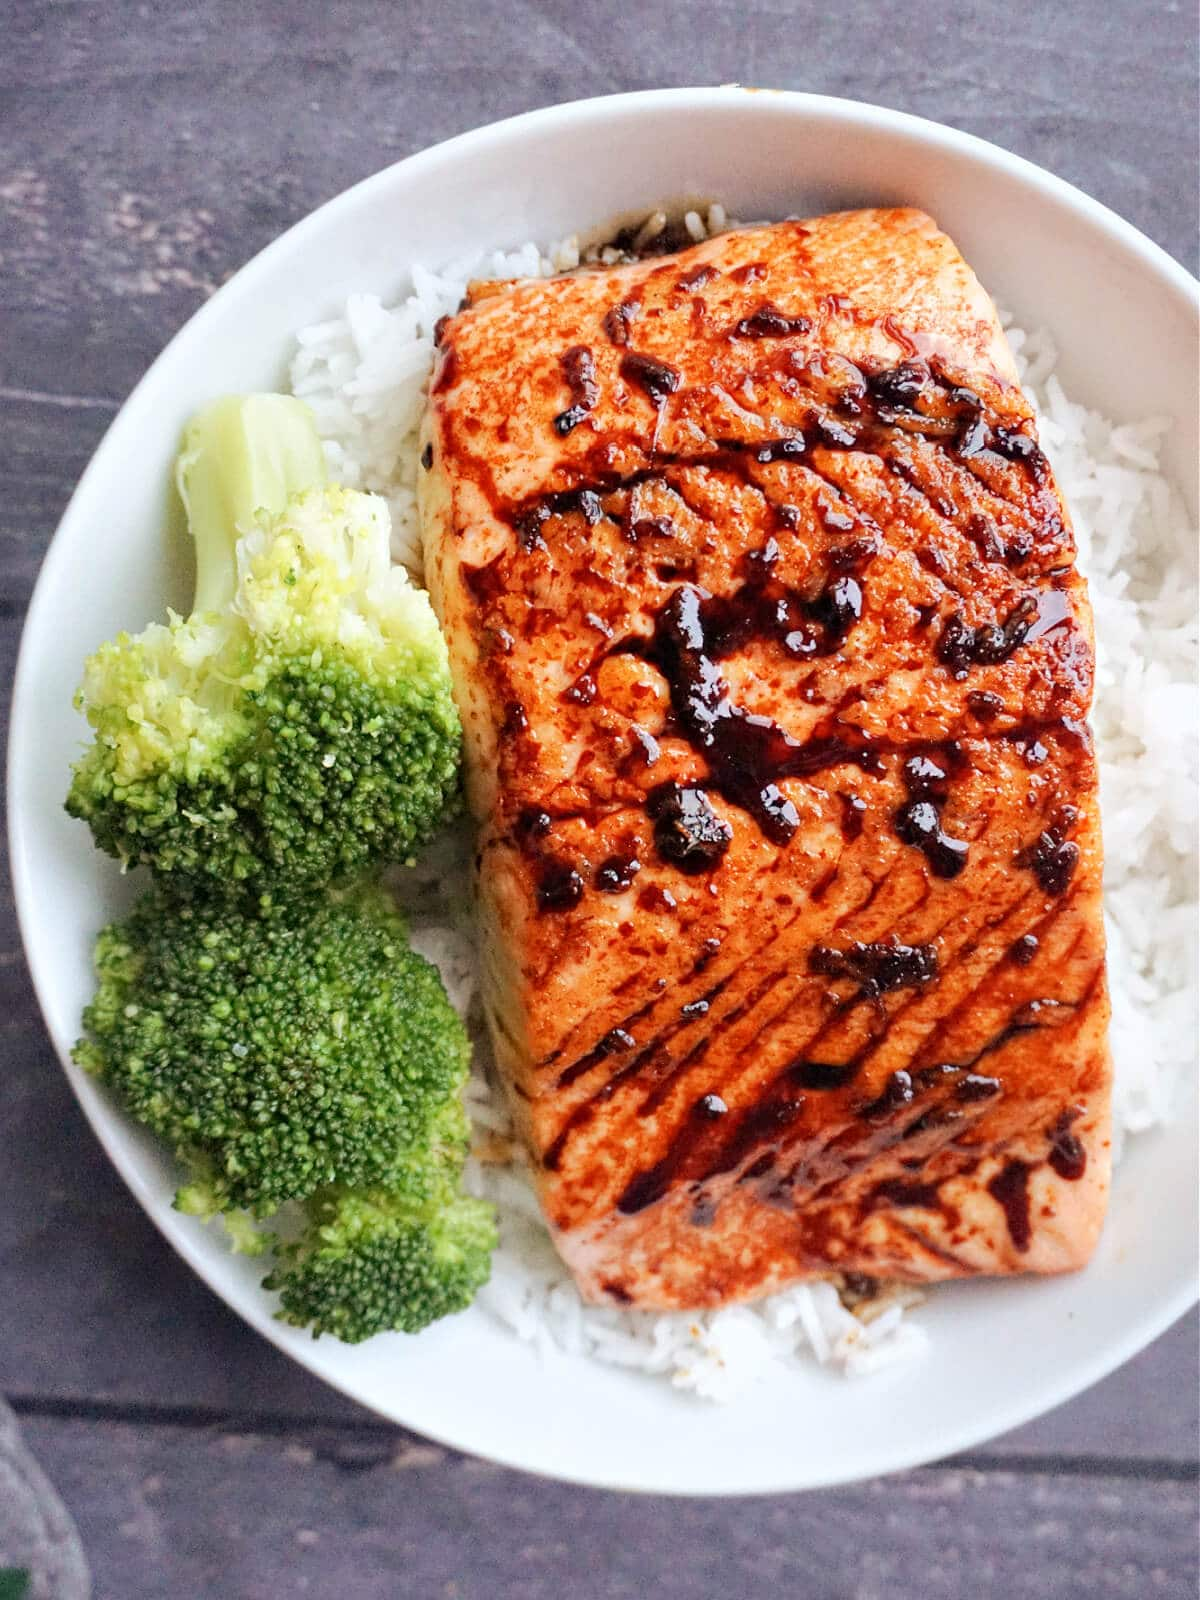 Overhead shot of a salmon fillet over a bed of rice and 2 broccoli florets